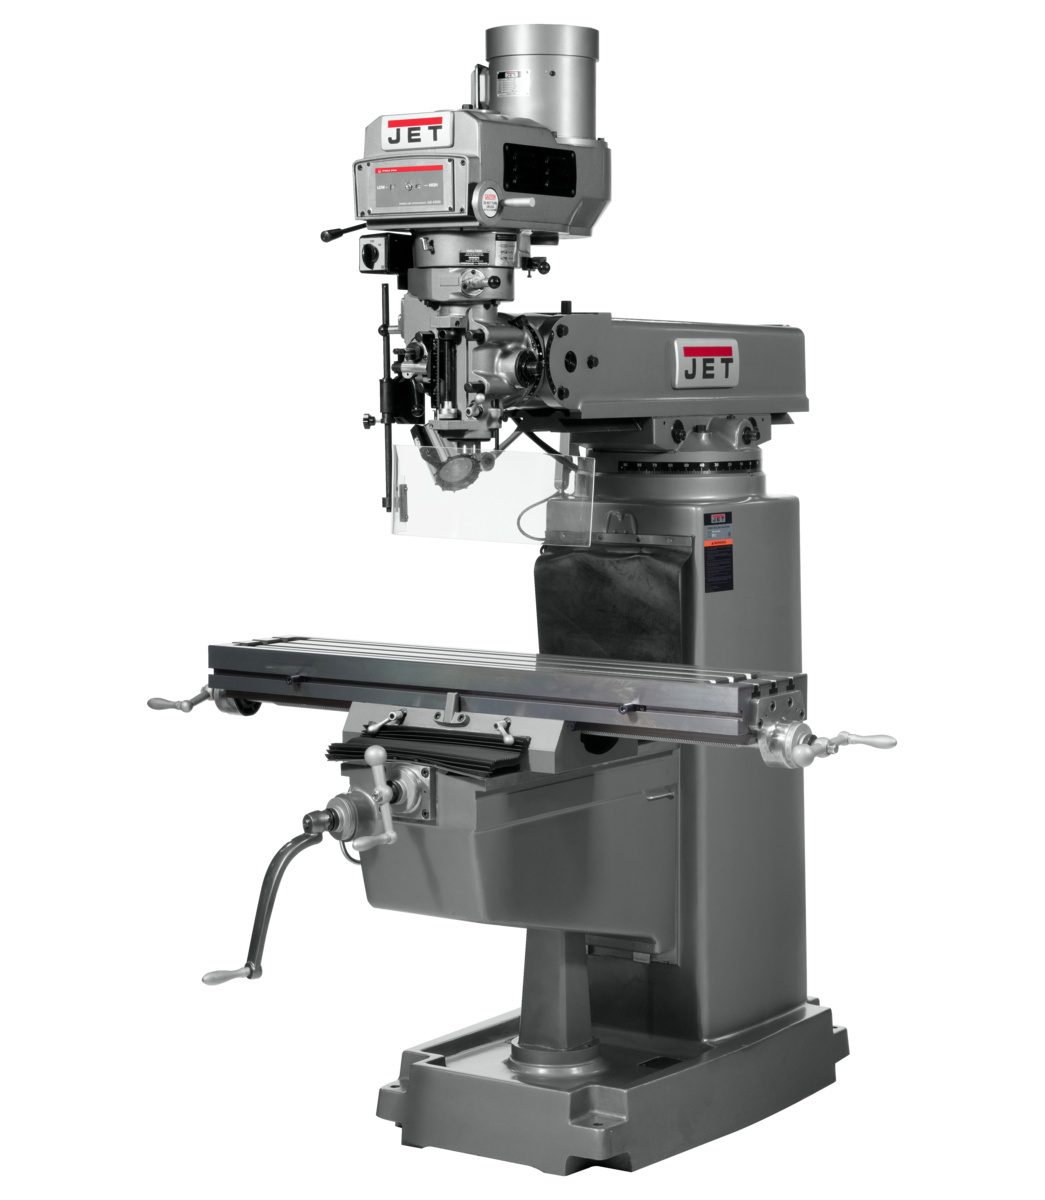 JTM-1050VS2 Mill With 3-Axis ACU-RITE 203 DRO (Quill) and X-Axis Powerfeed